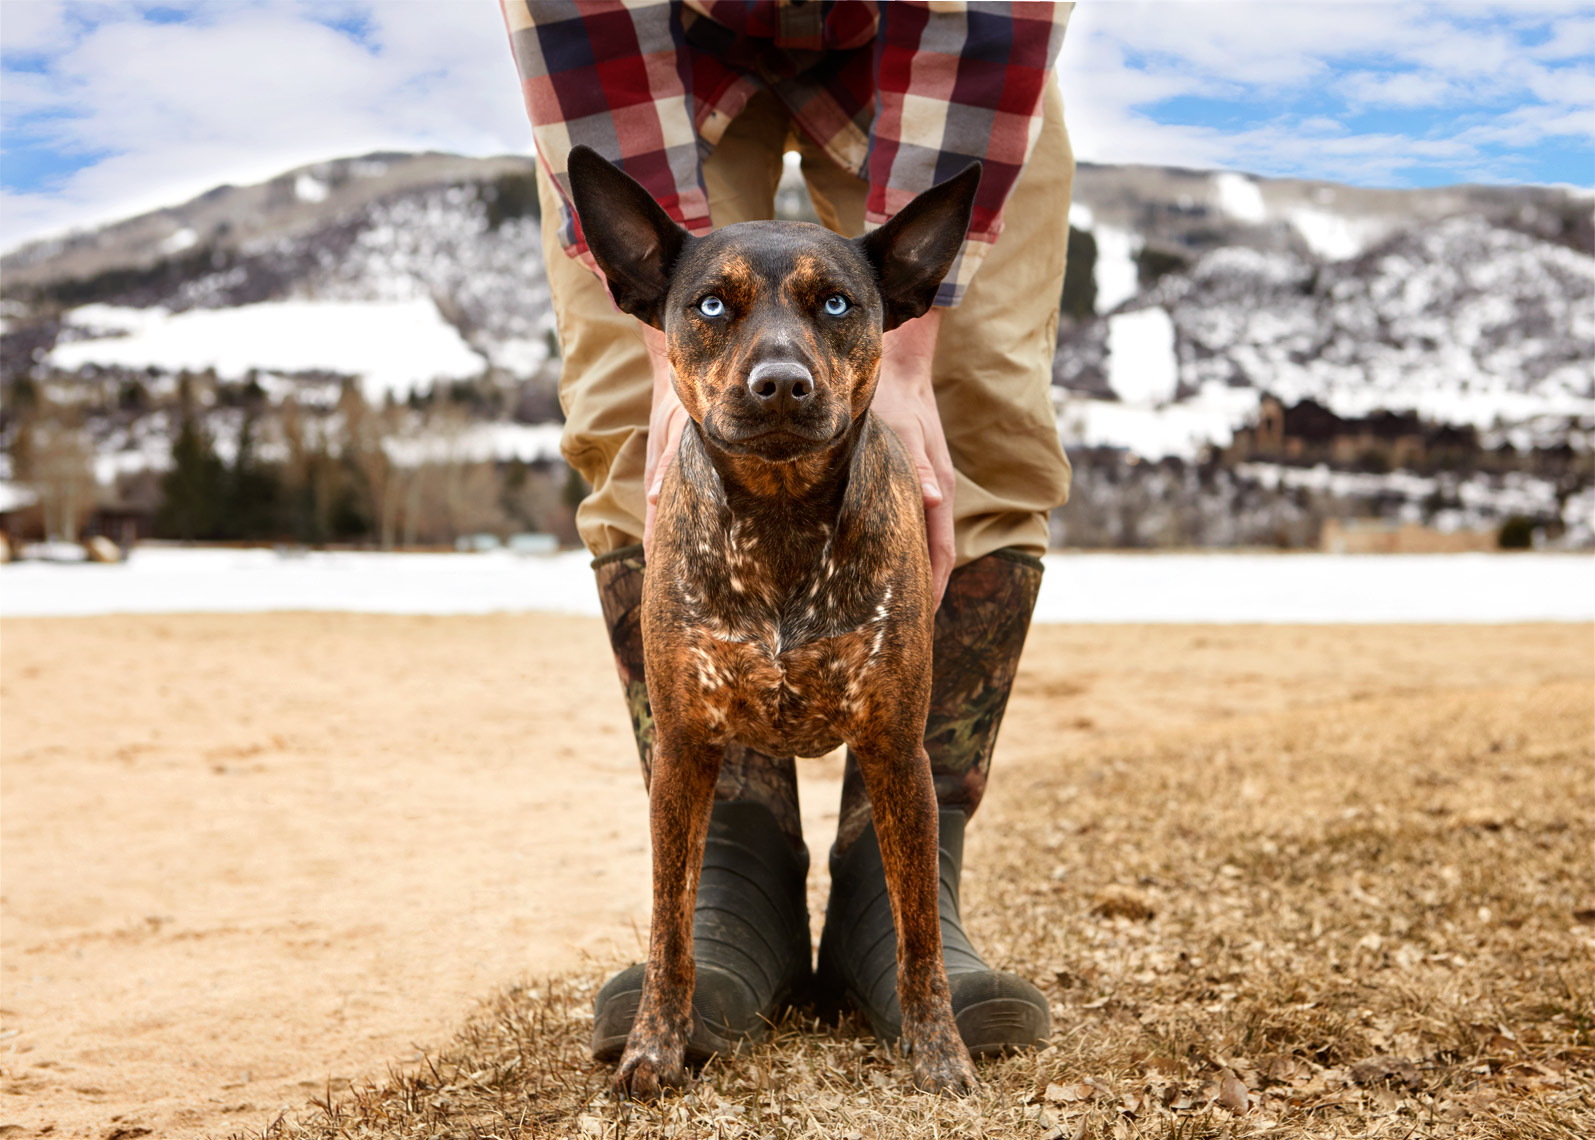 Cattle dog with man in boots